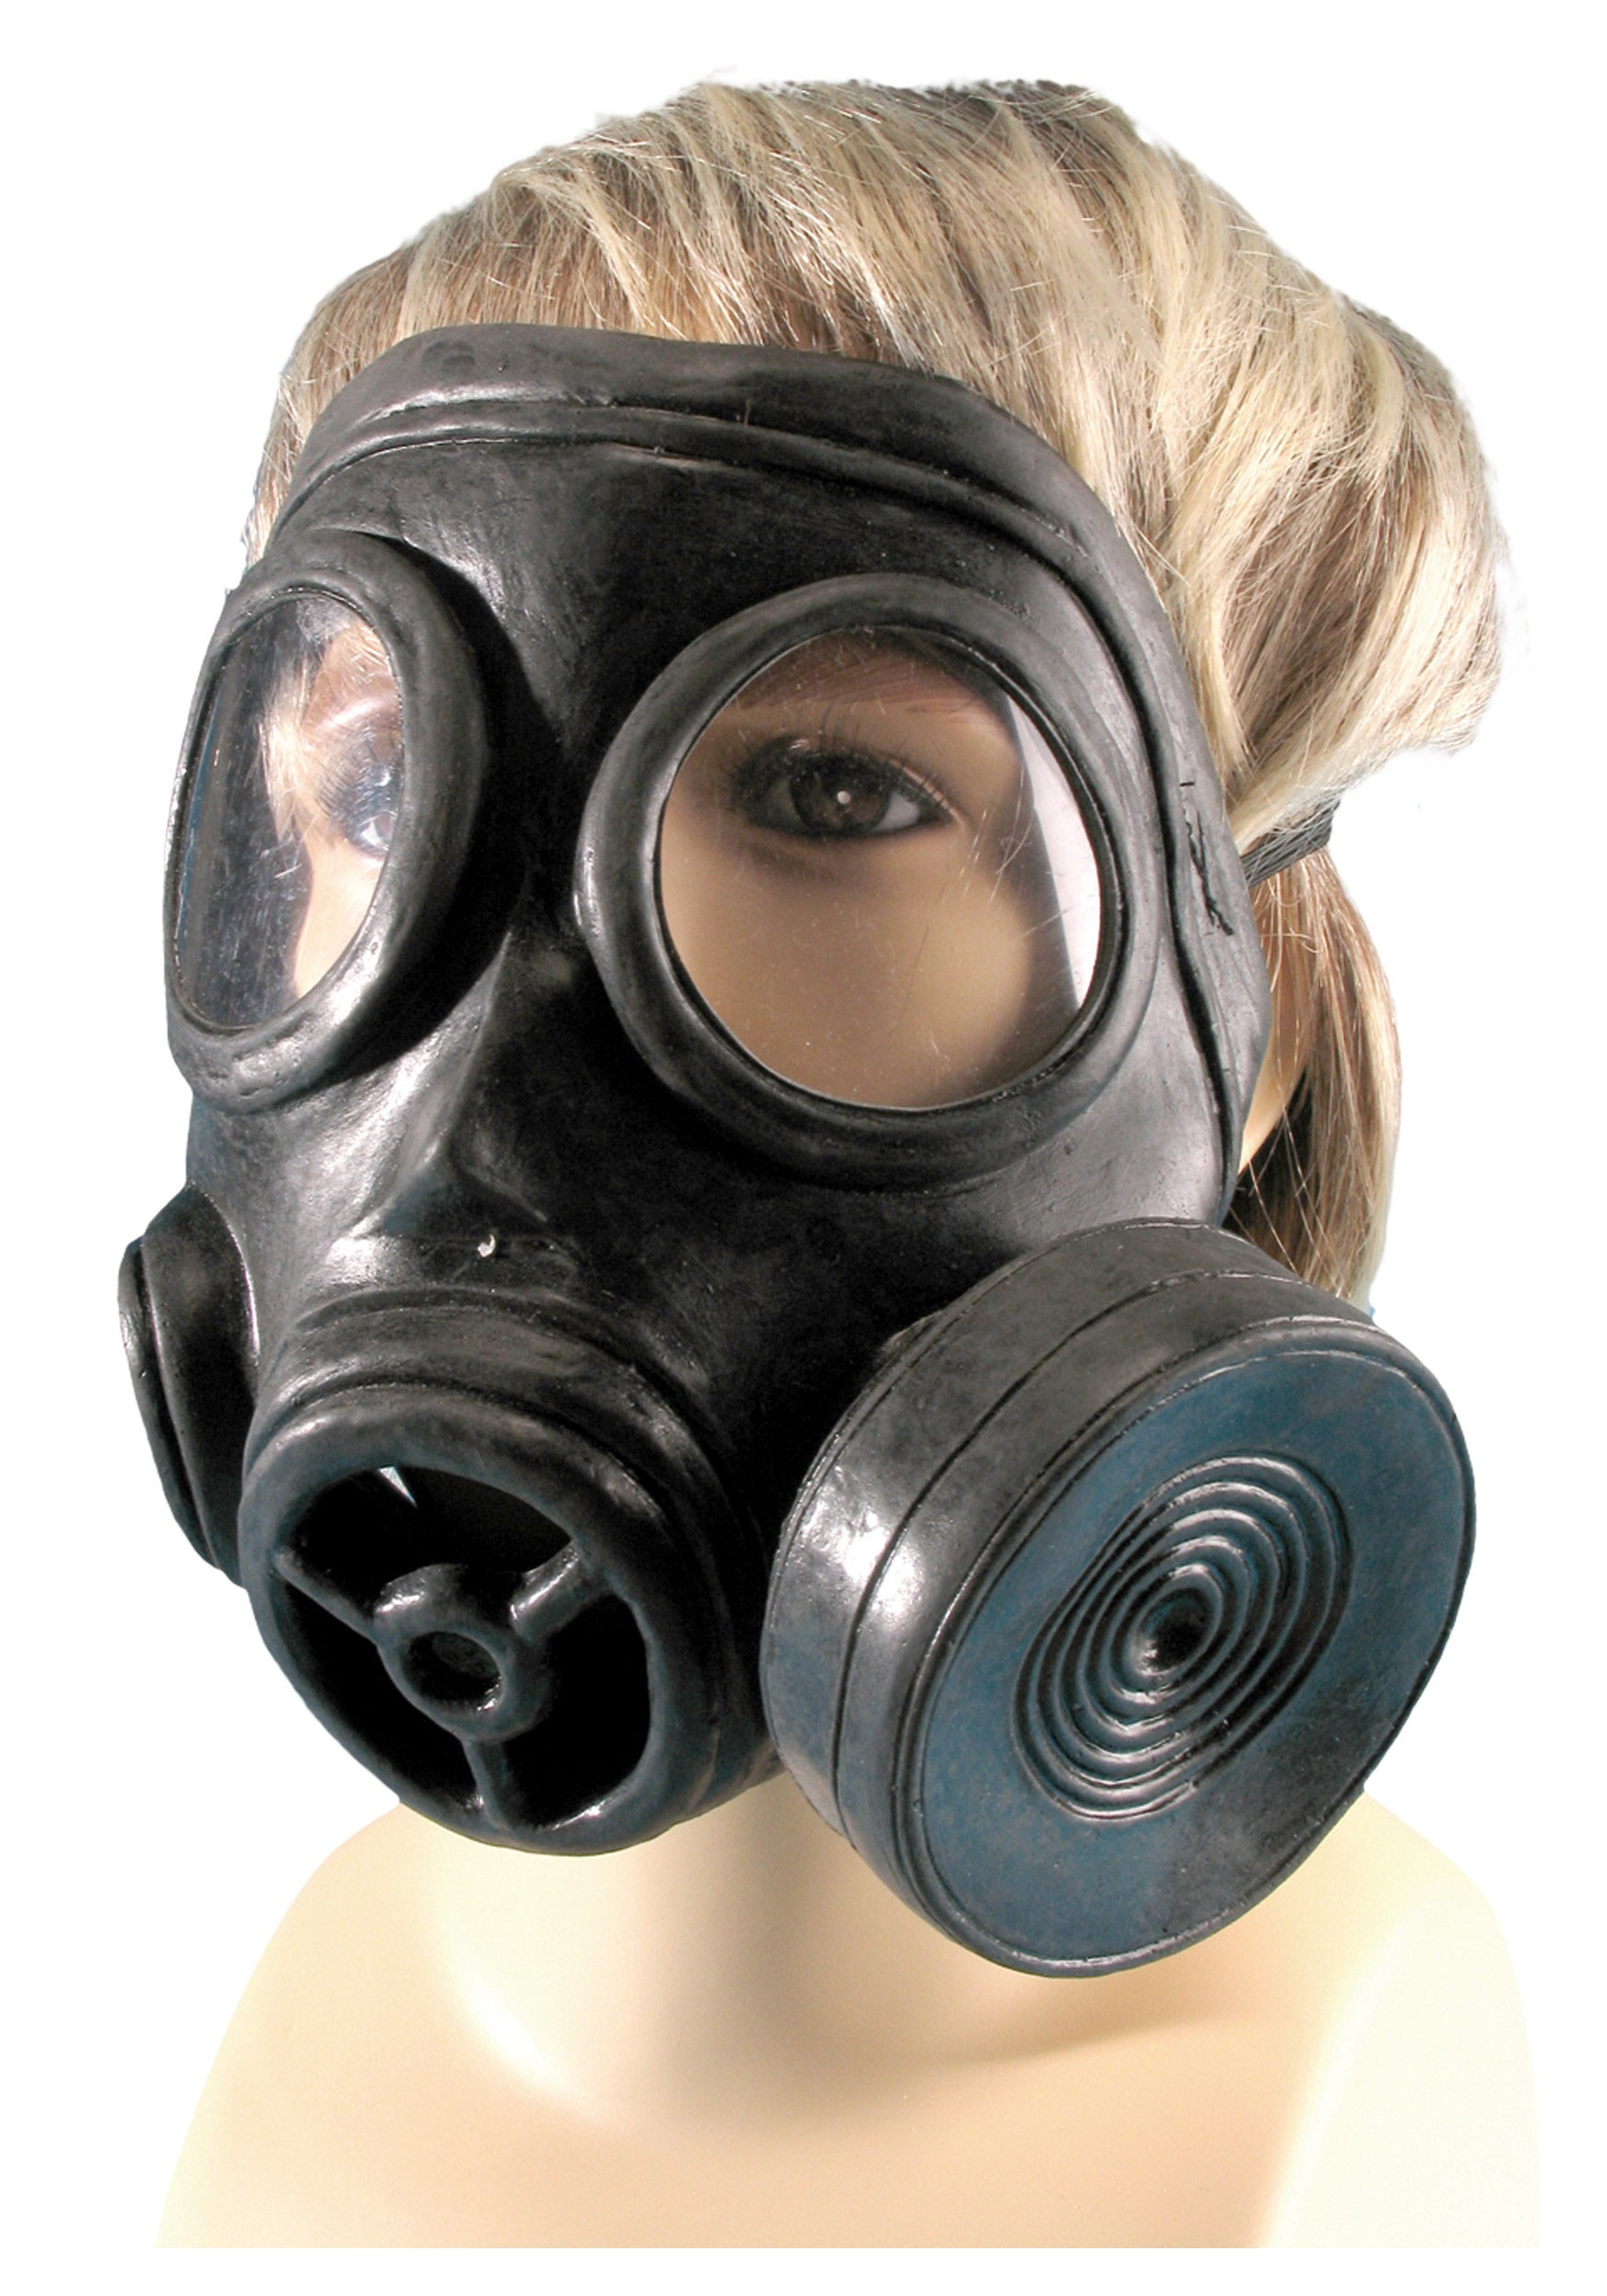 Gas Mask Pics, Dark Collection